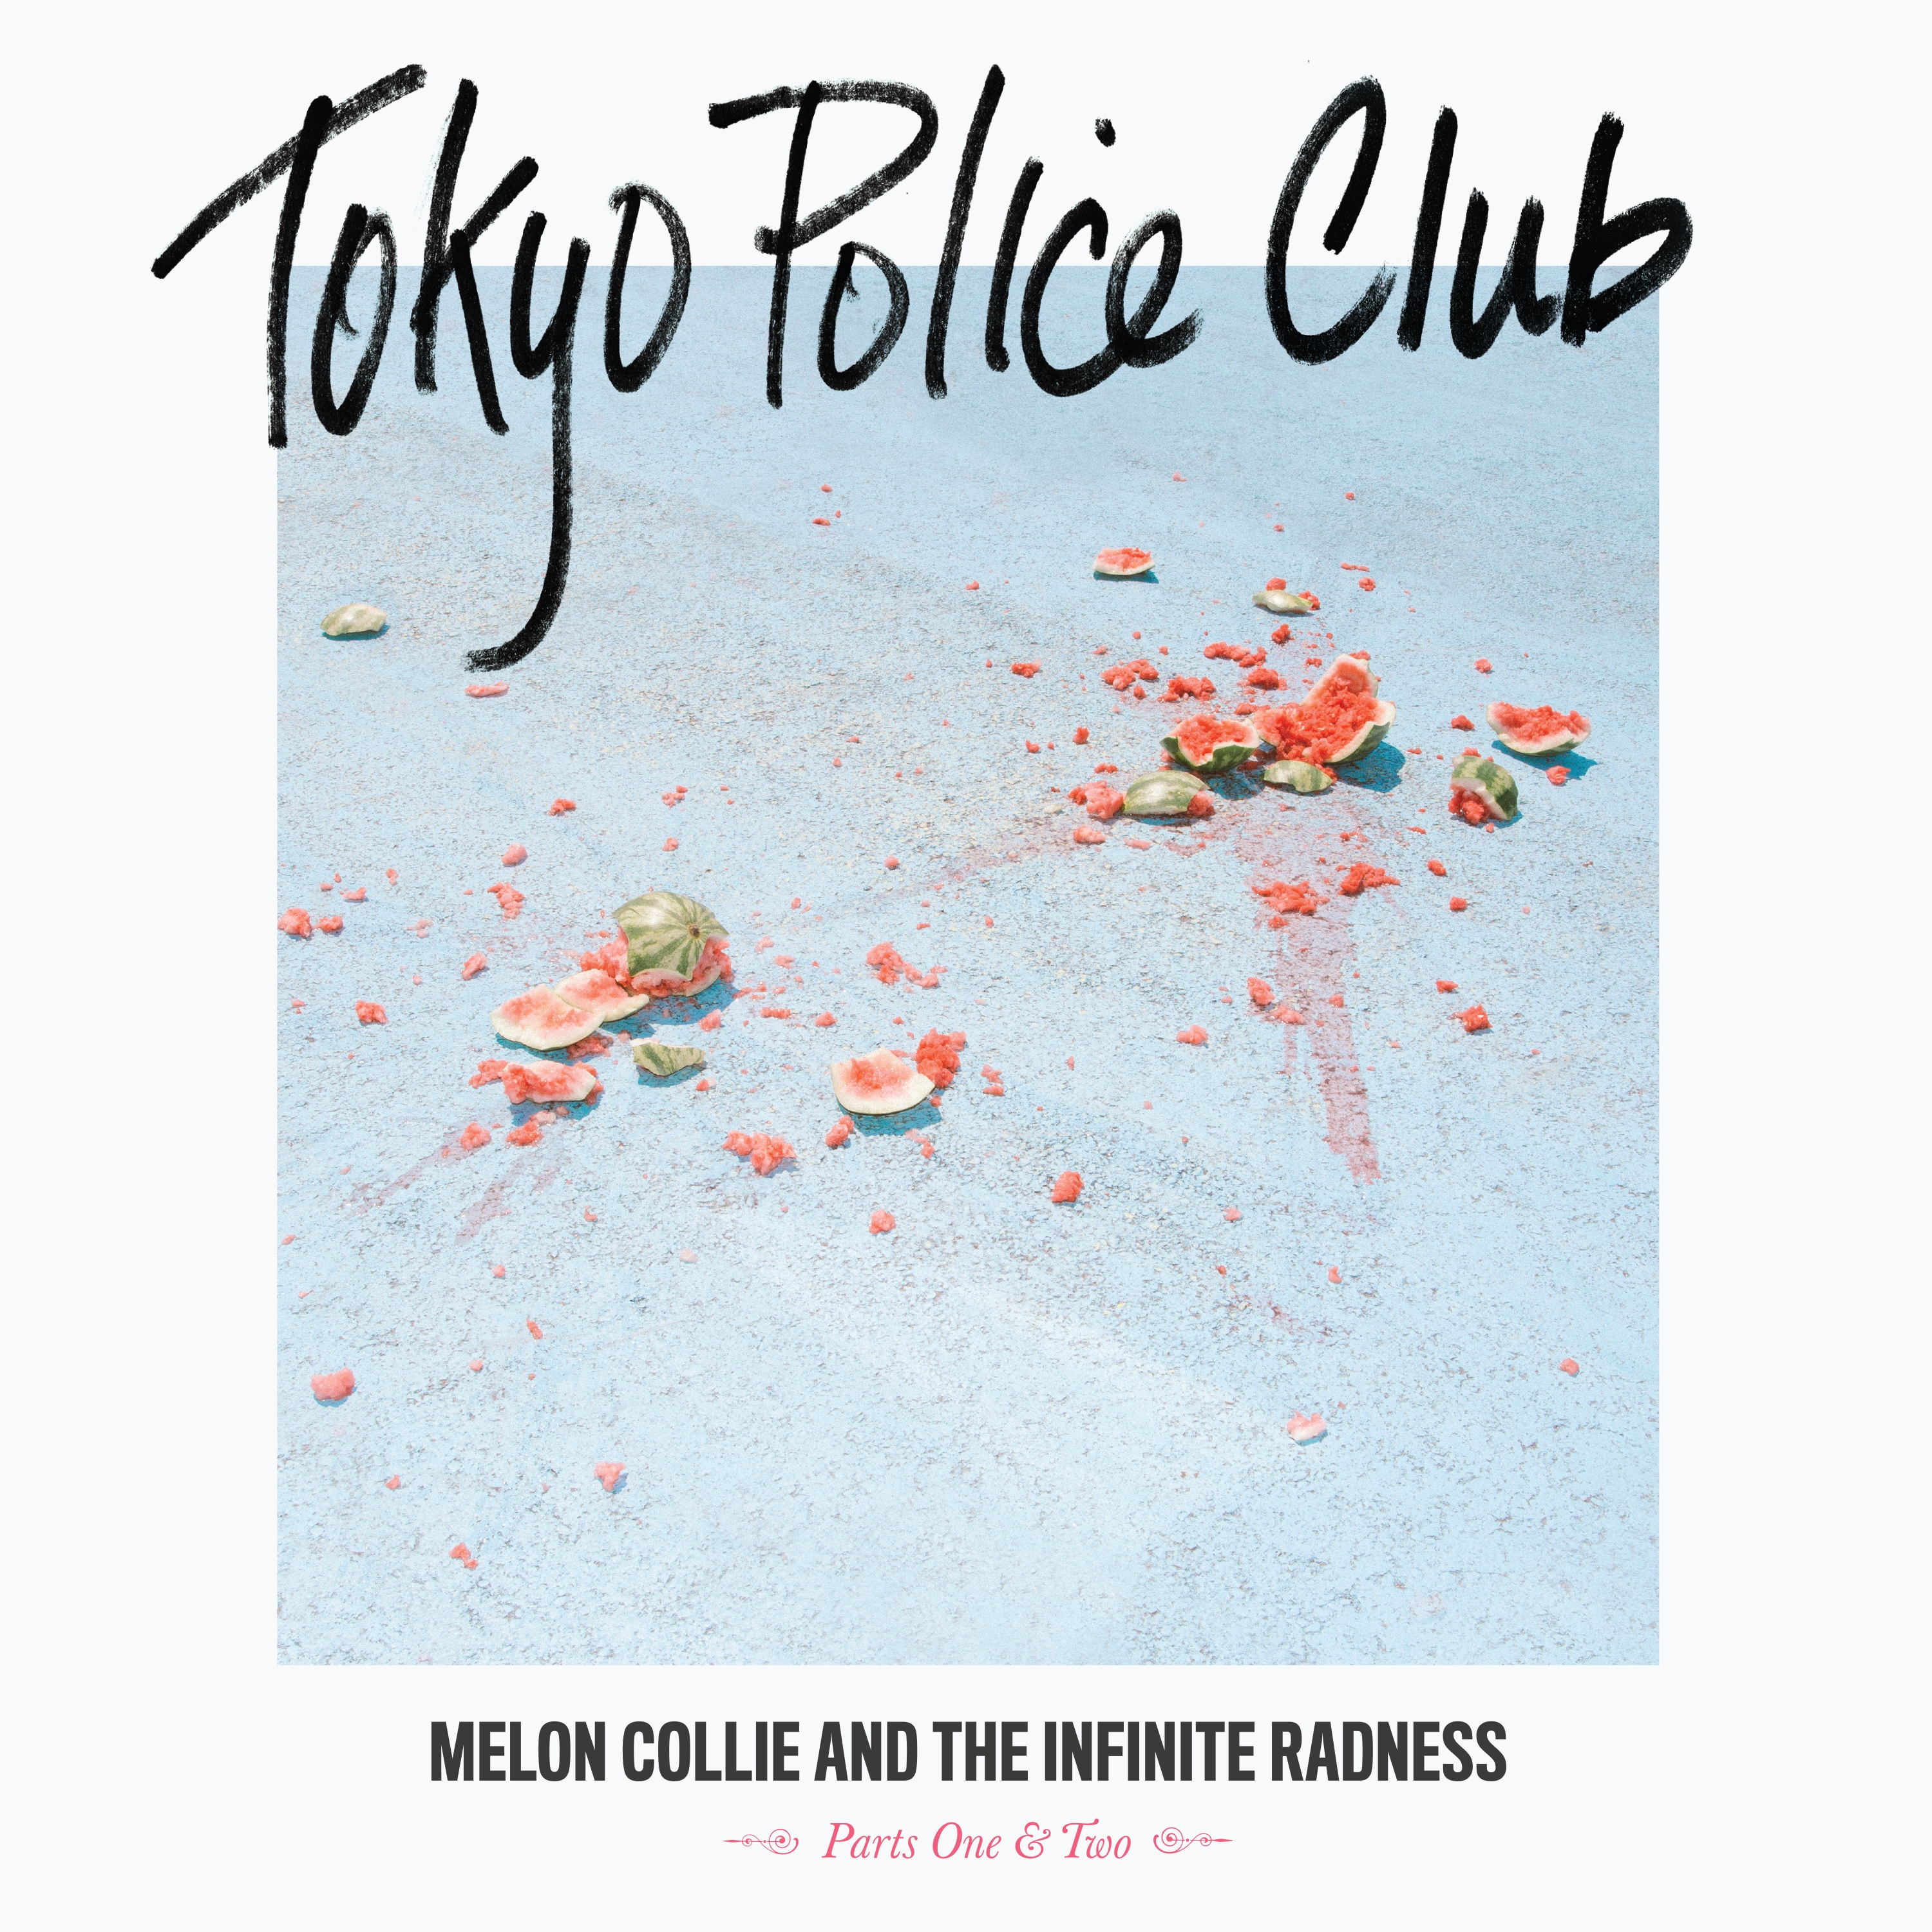 Vinyl Releases New Video From Tokyo Police Club Dine